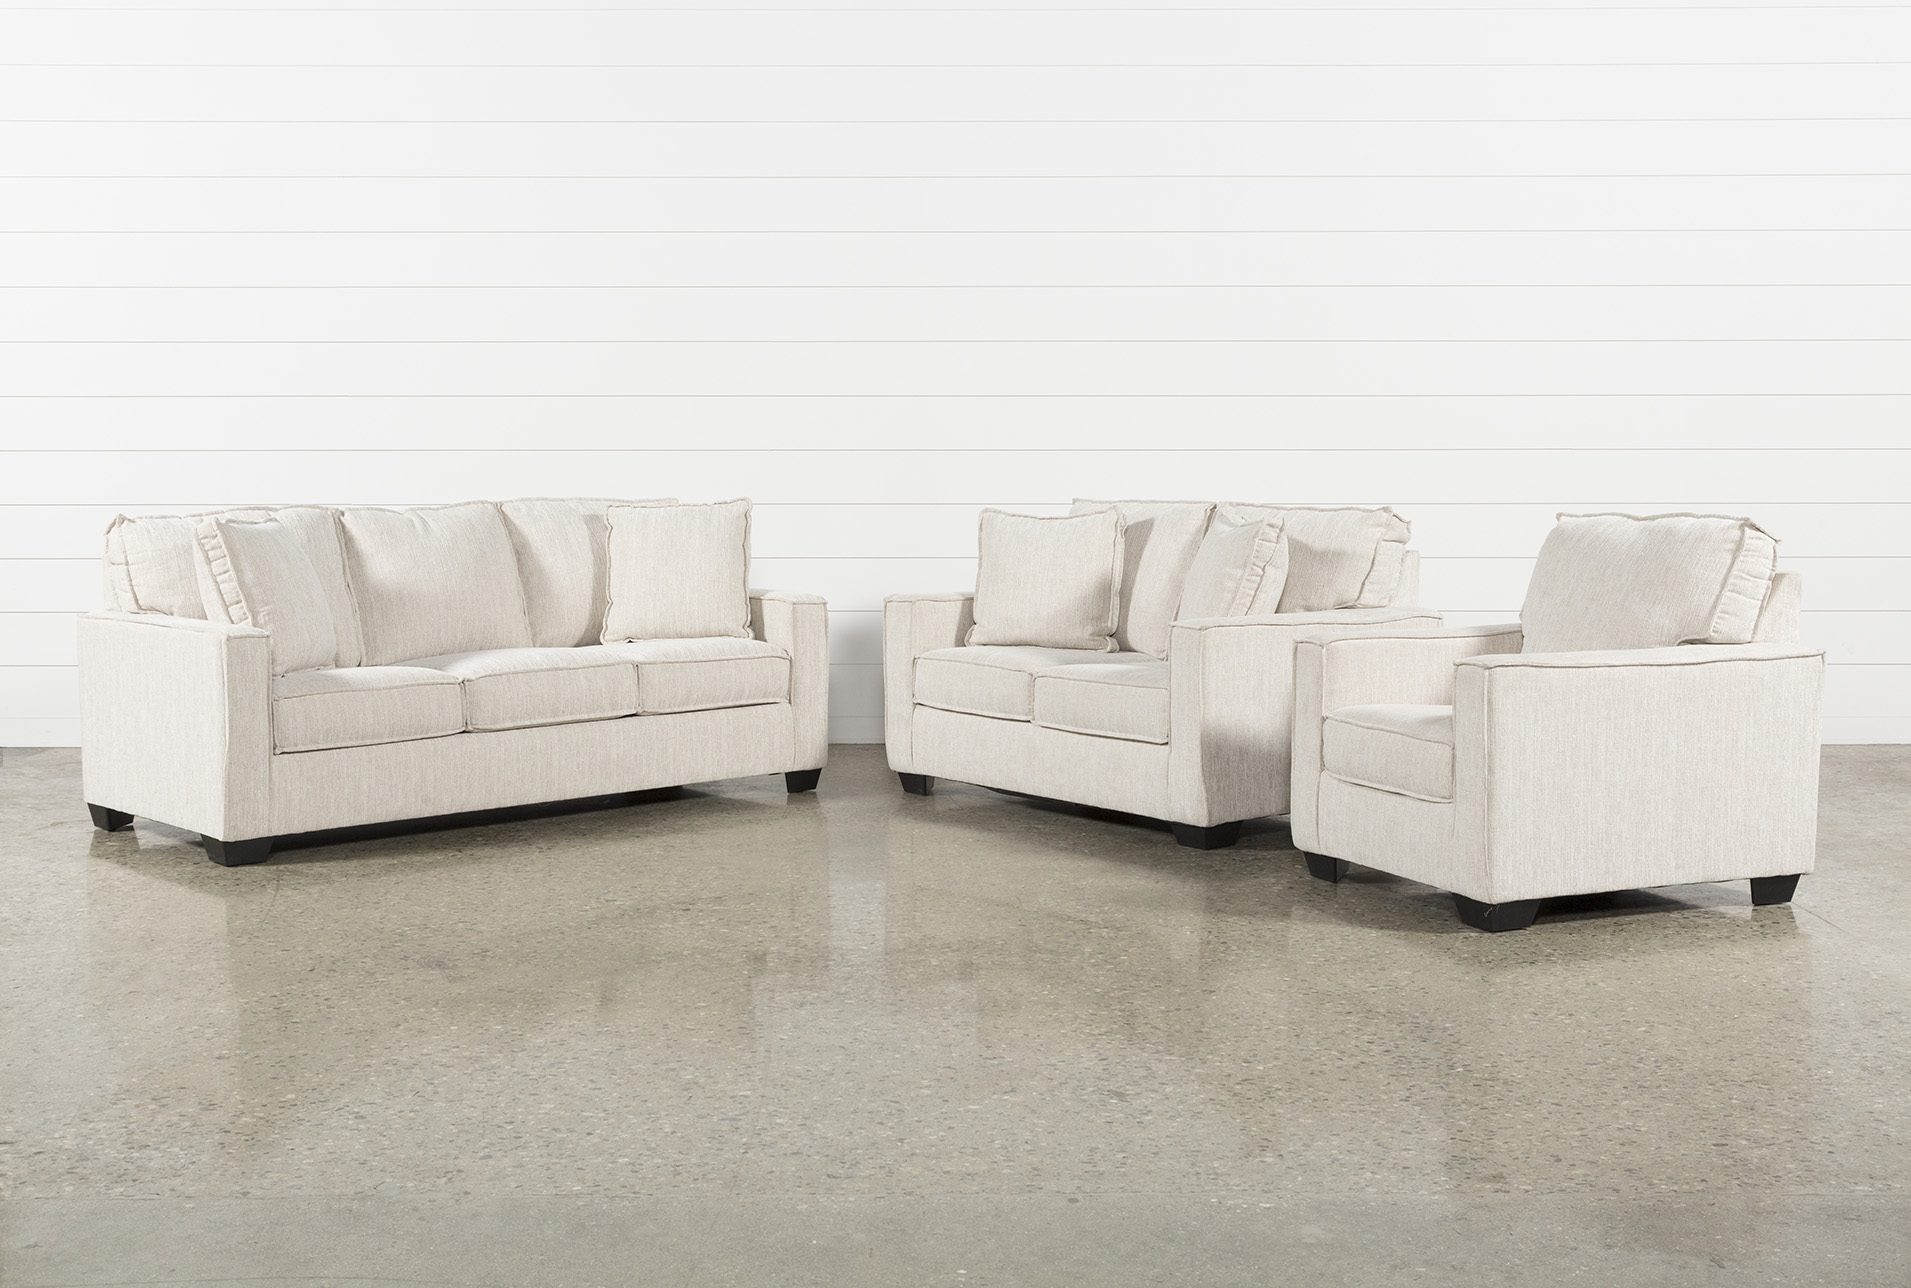 Lovely Escondido 3 Piece Living Room Set (Qty: 1) Has Been Successfully Added To  Your Cart.